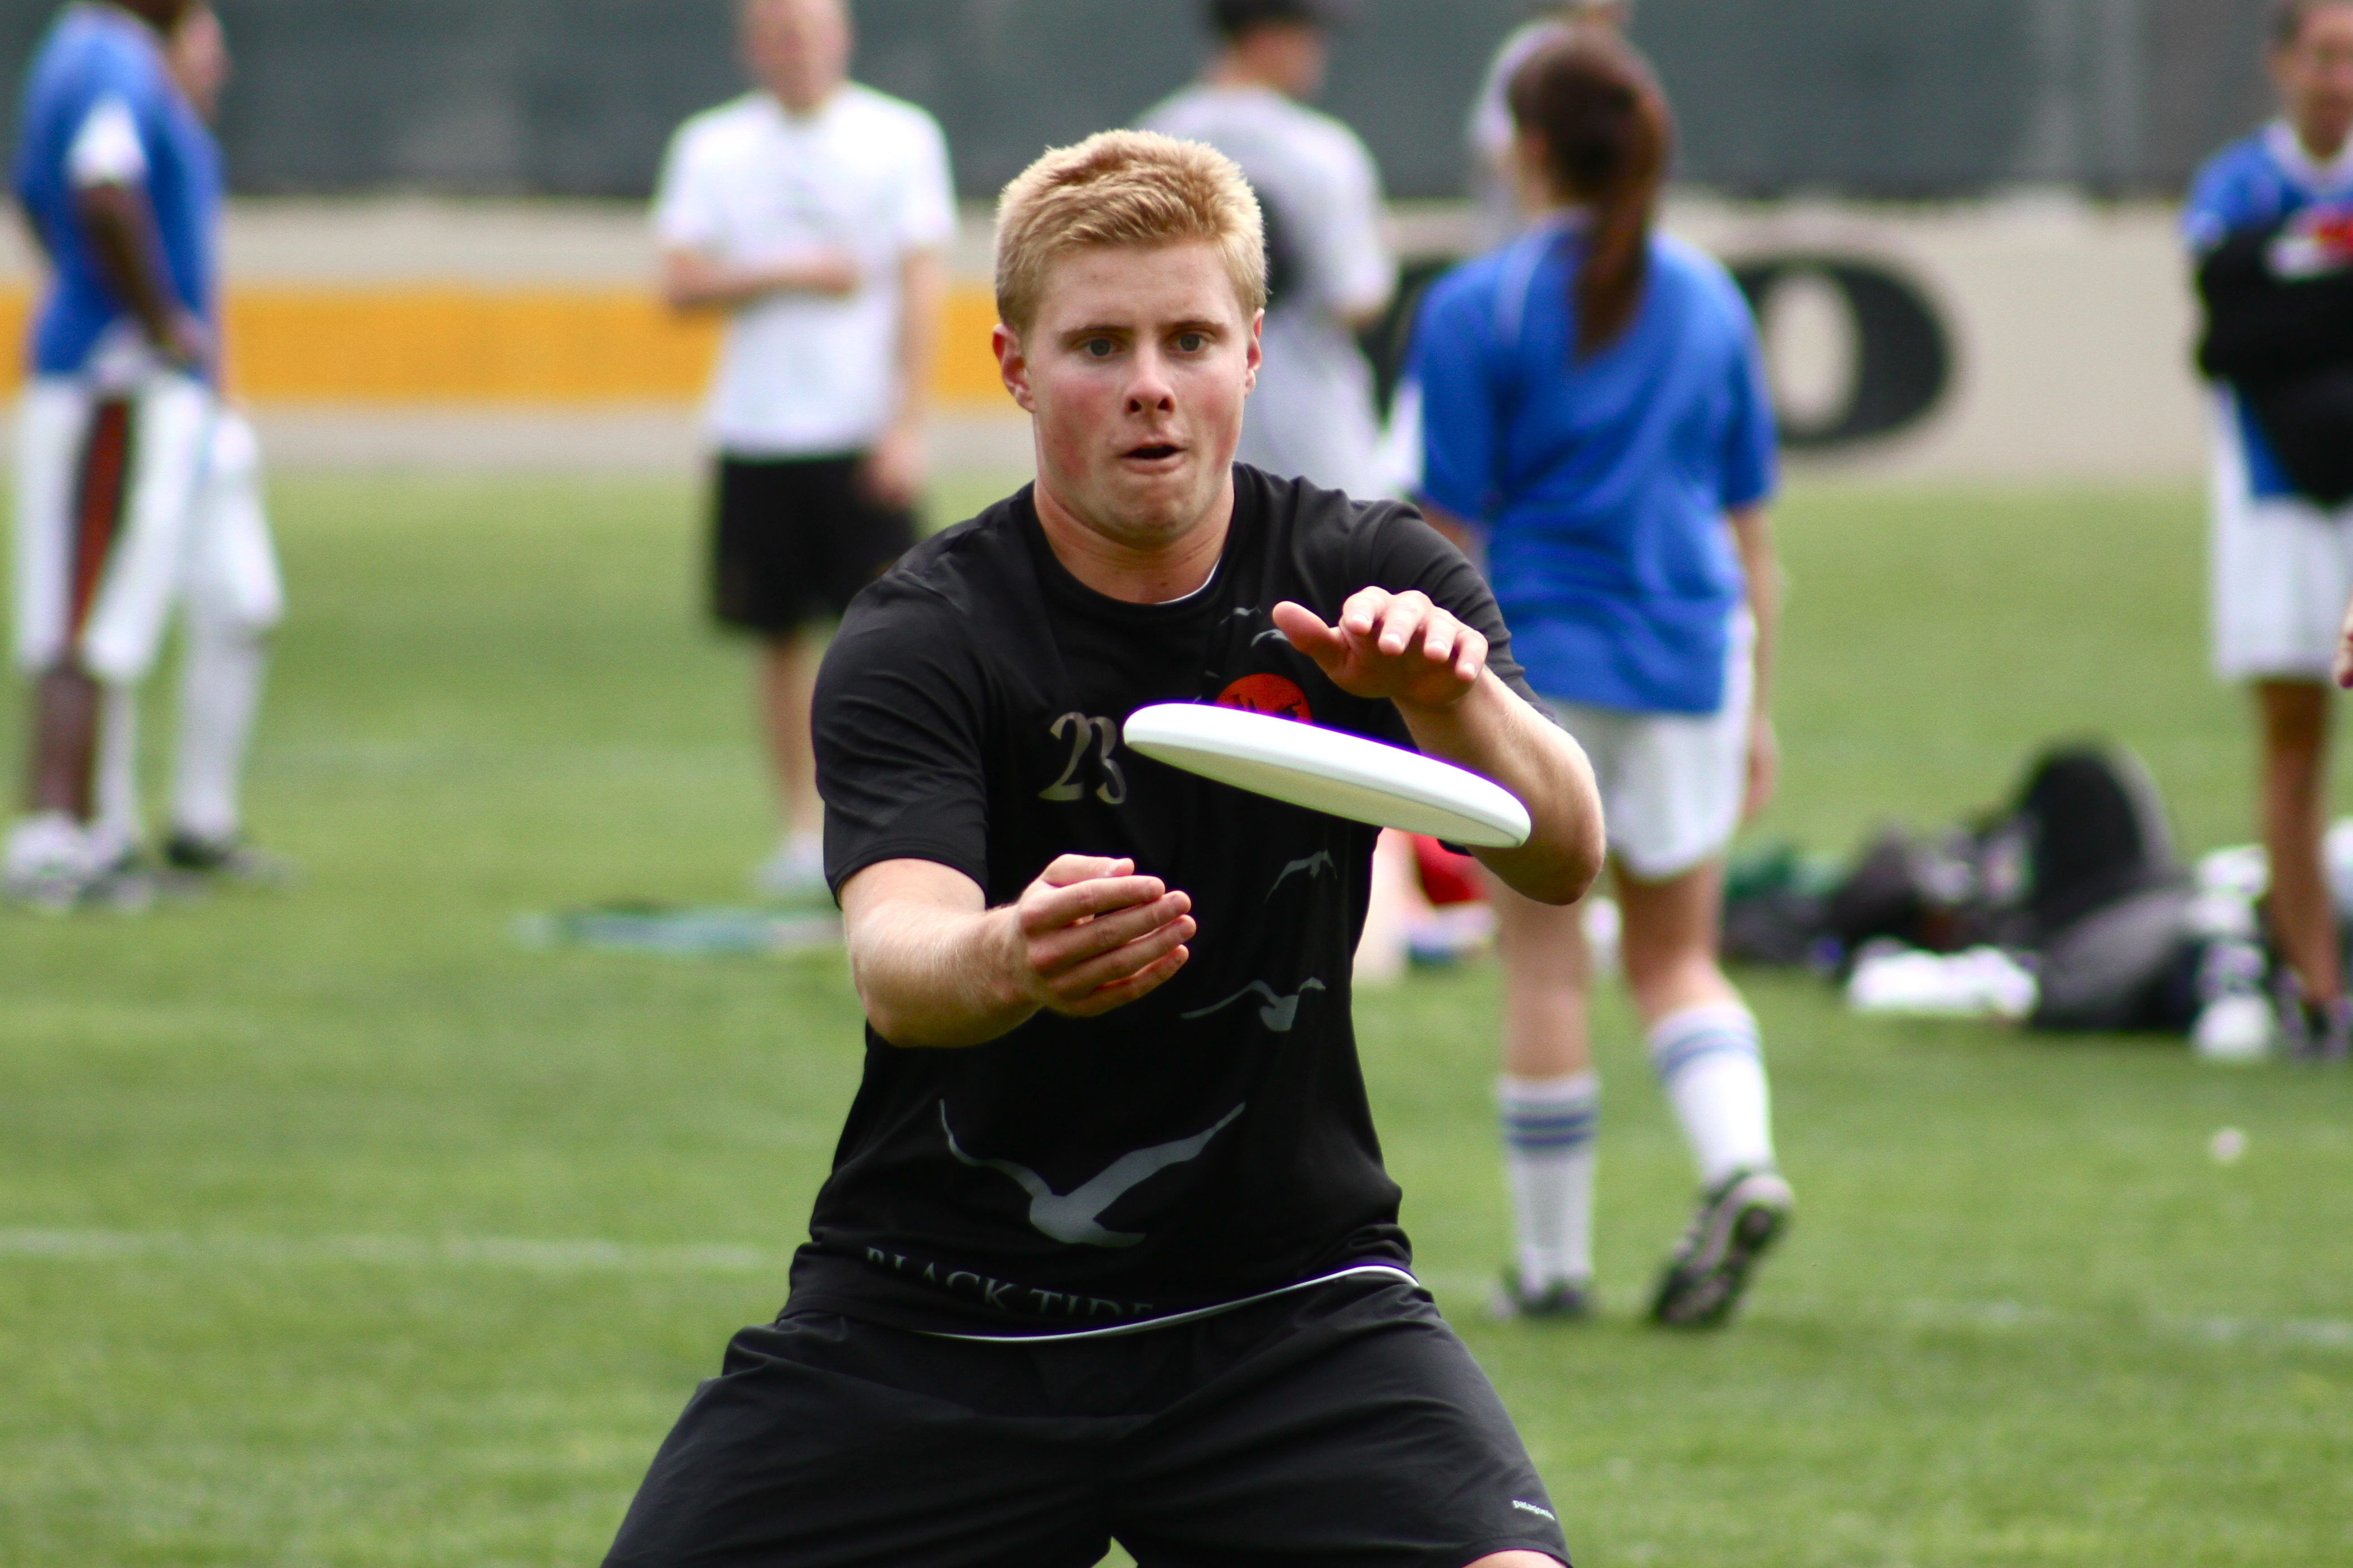 Ultimate Tips and Tricks: Ultimate Frisbee Tips: Catching